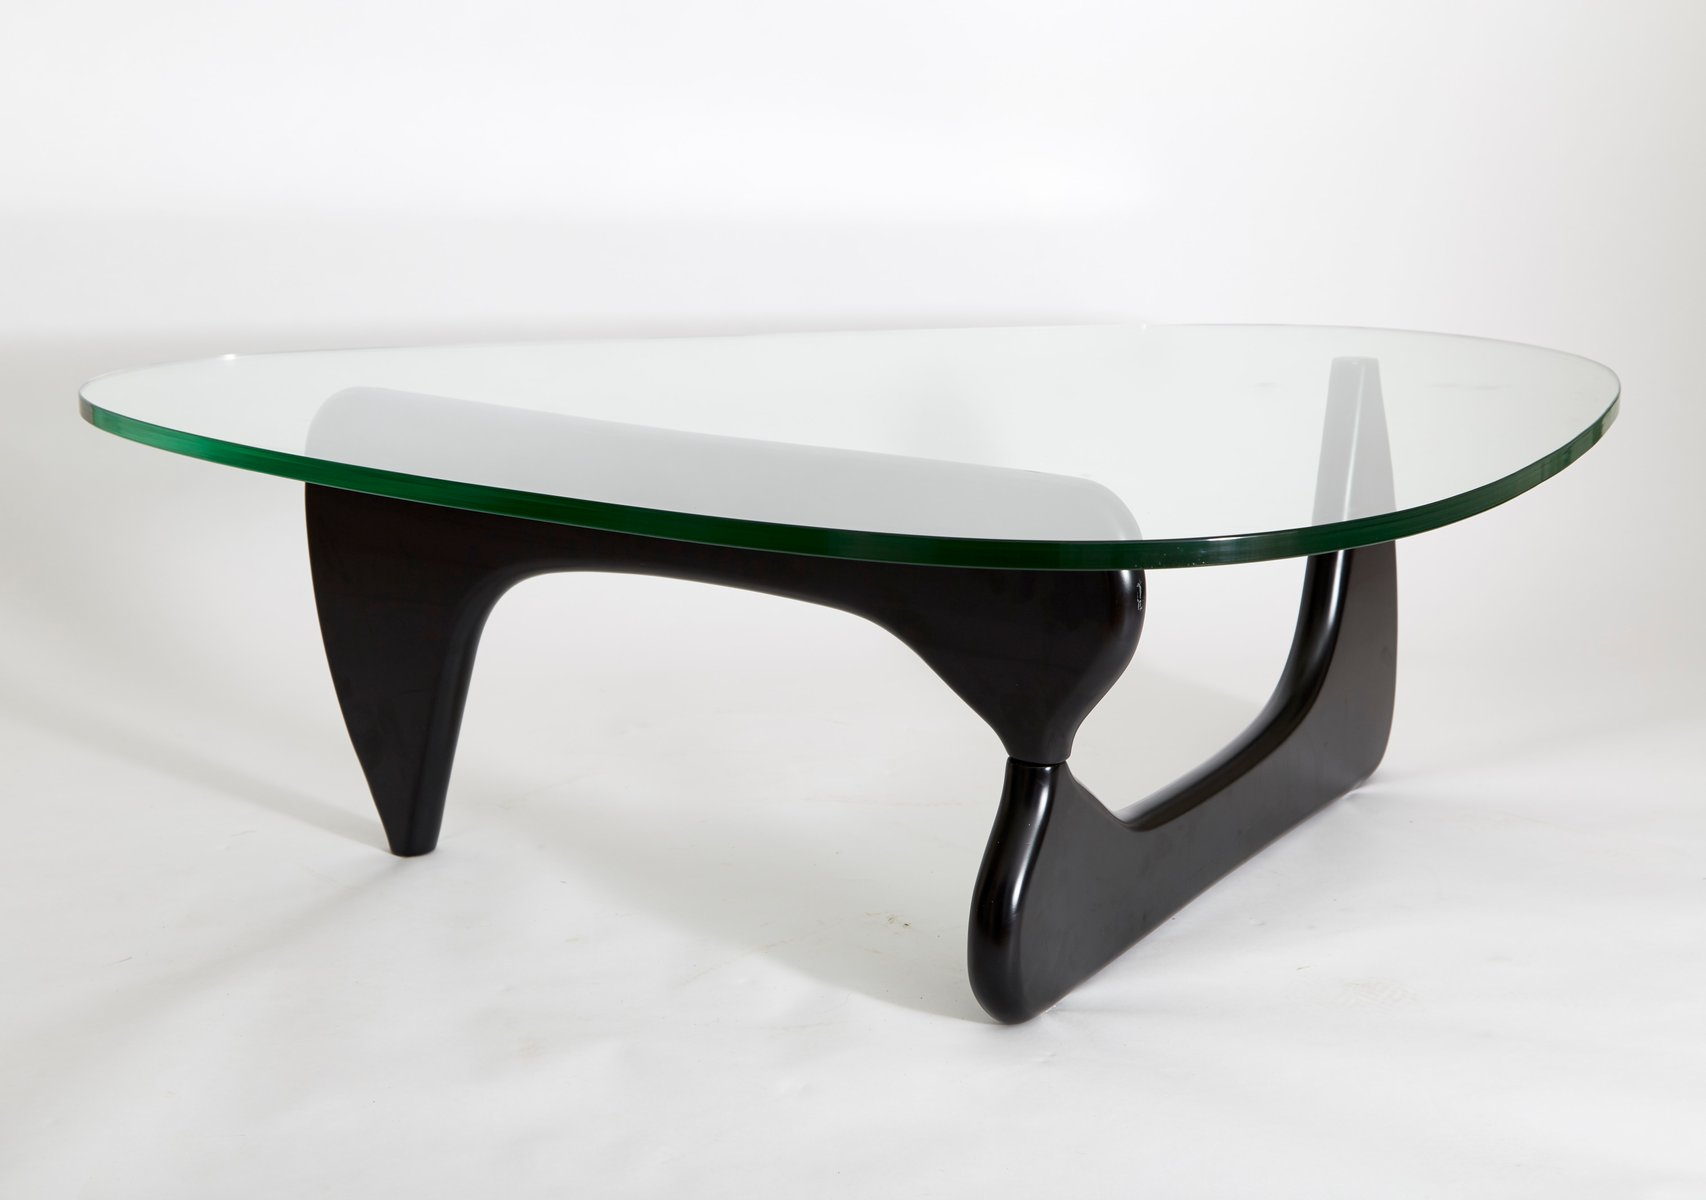 American In 50 Coffee Table By Isamu Noguchi For Herman Miller 1944 For Sale At Pamono